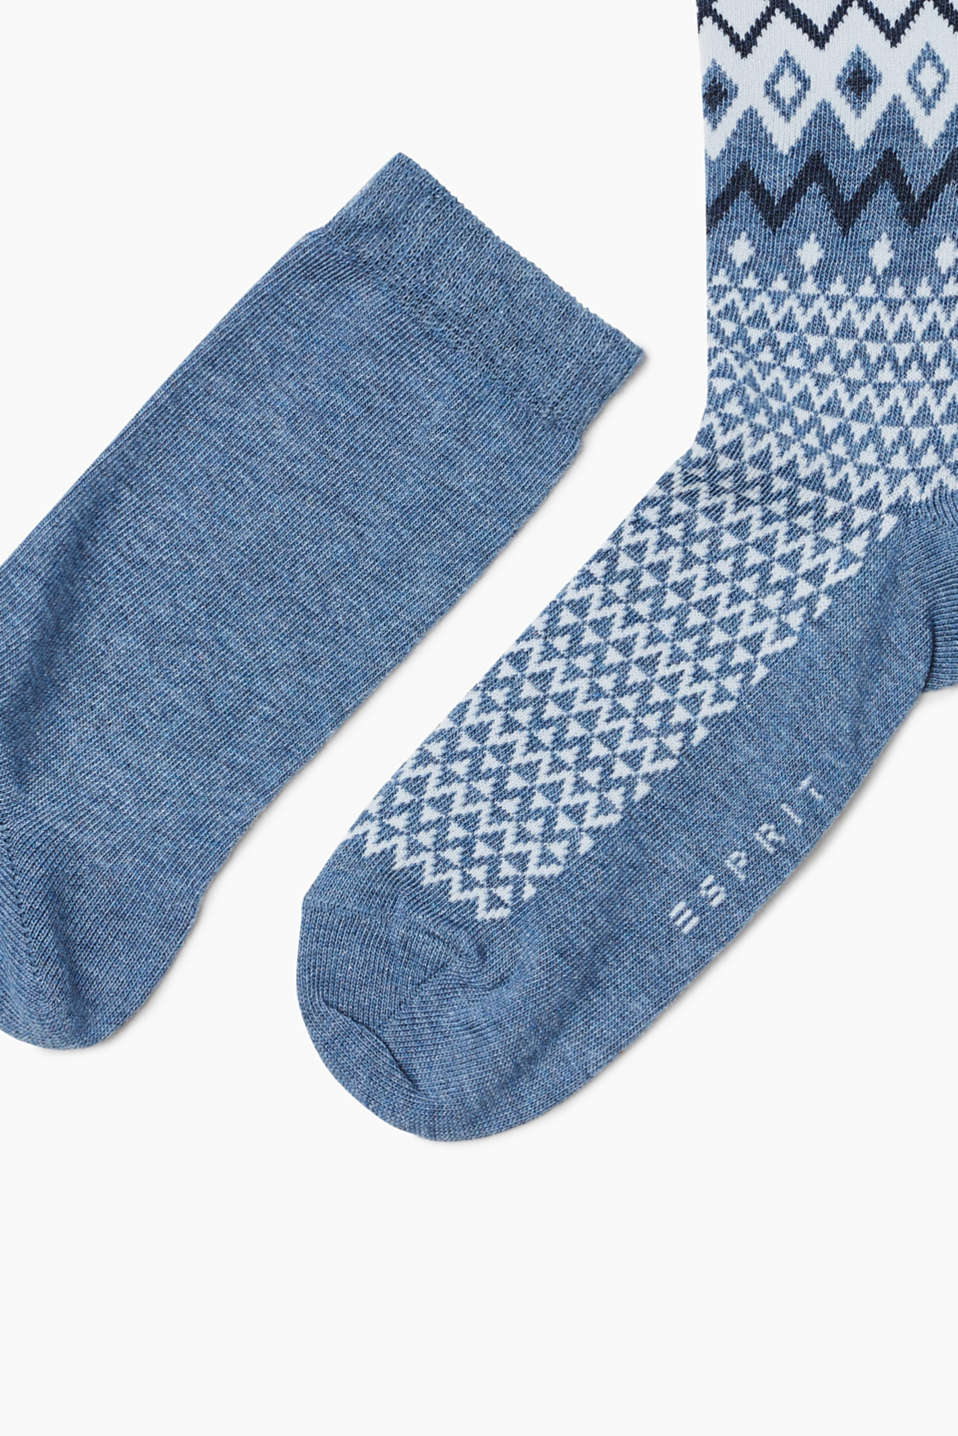 2 pairs of socks with an interwoven pattern